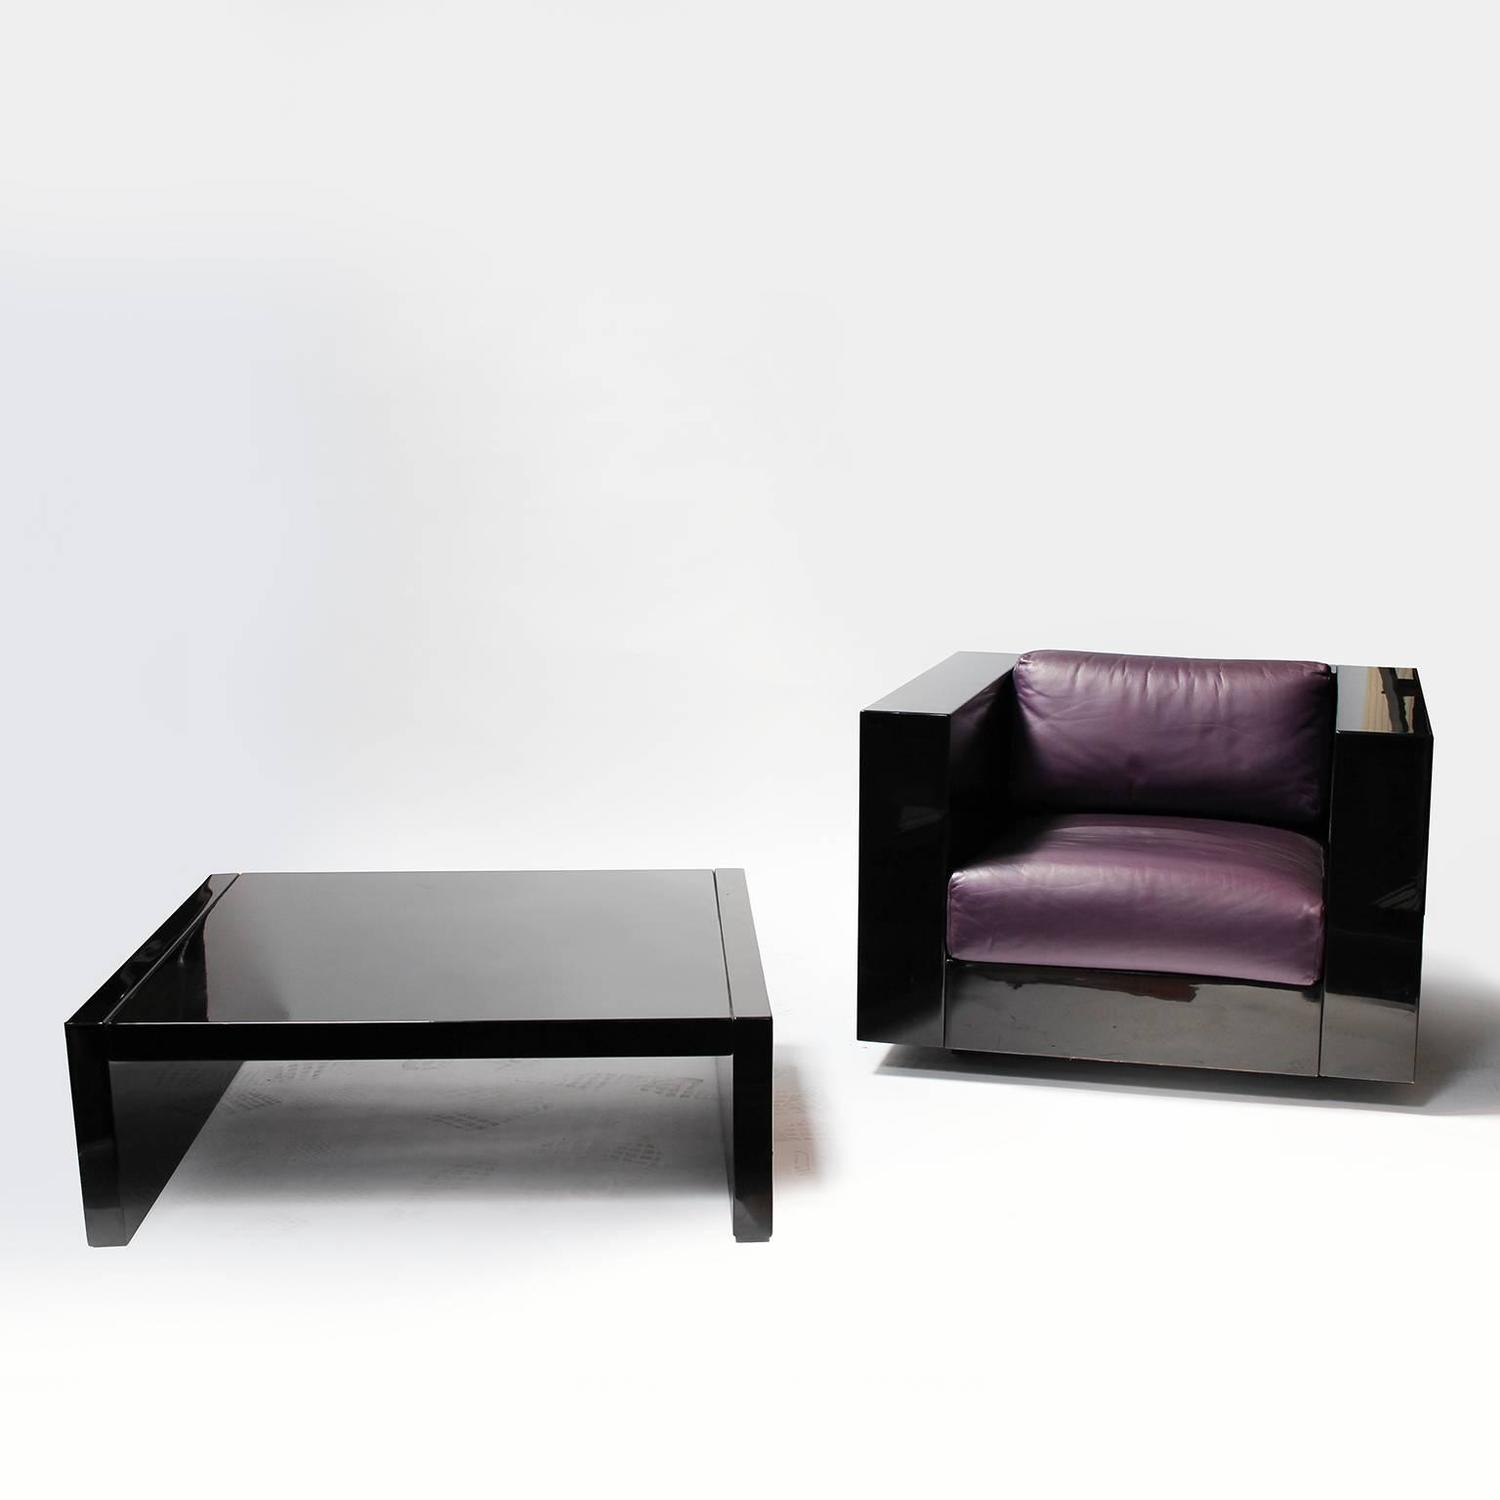 39 Saratoga 39 Living Room Set By Massimo And Lella Vignelli For Poltronova For Sale At 1stdibs